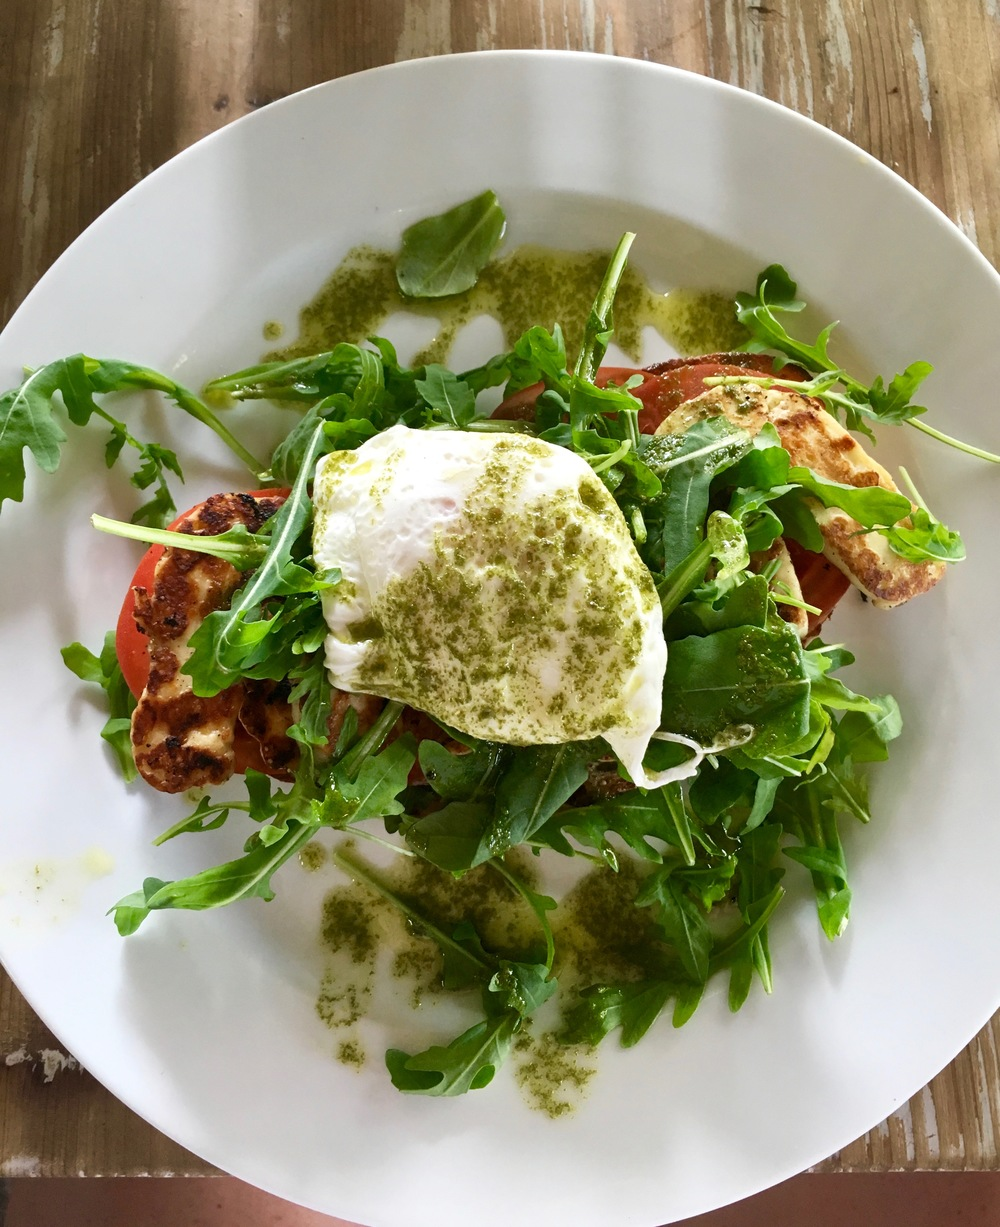 halloumi hiding beneath the arugula